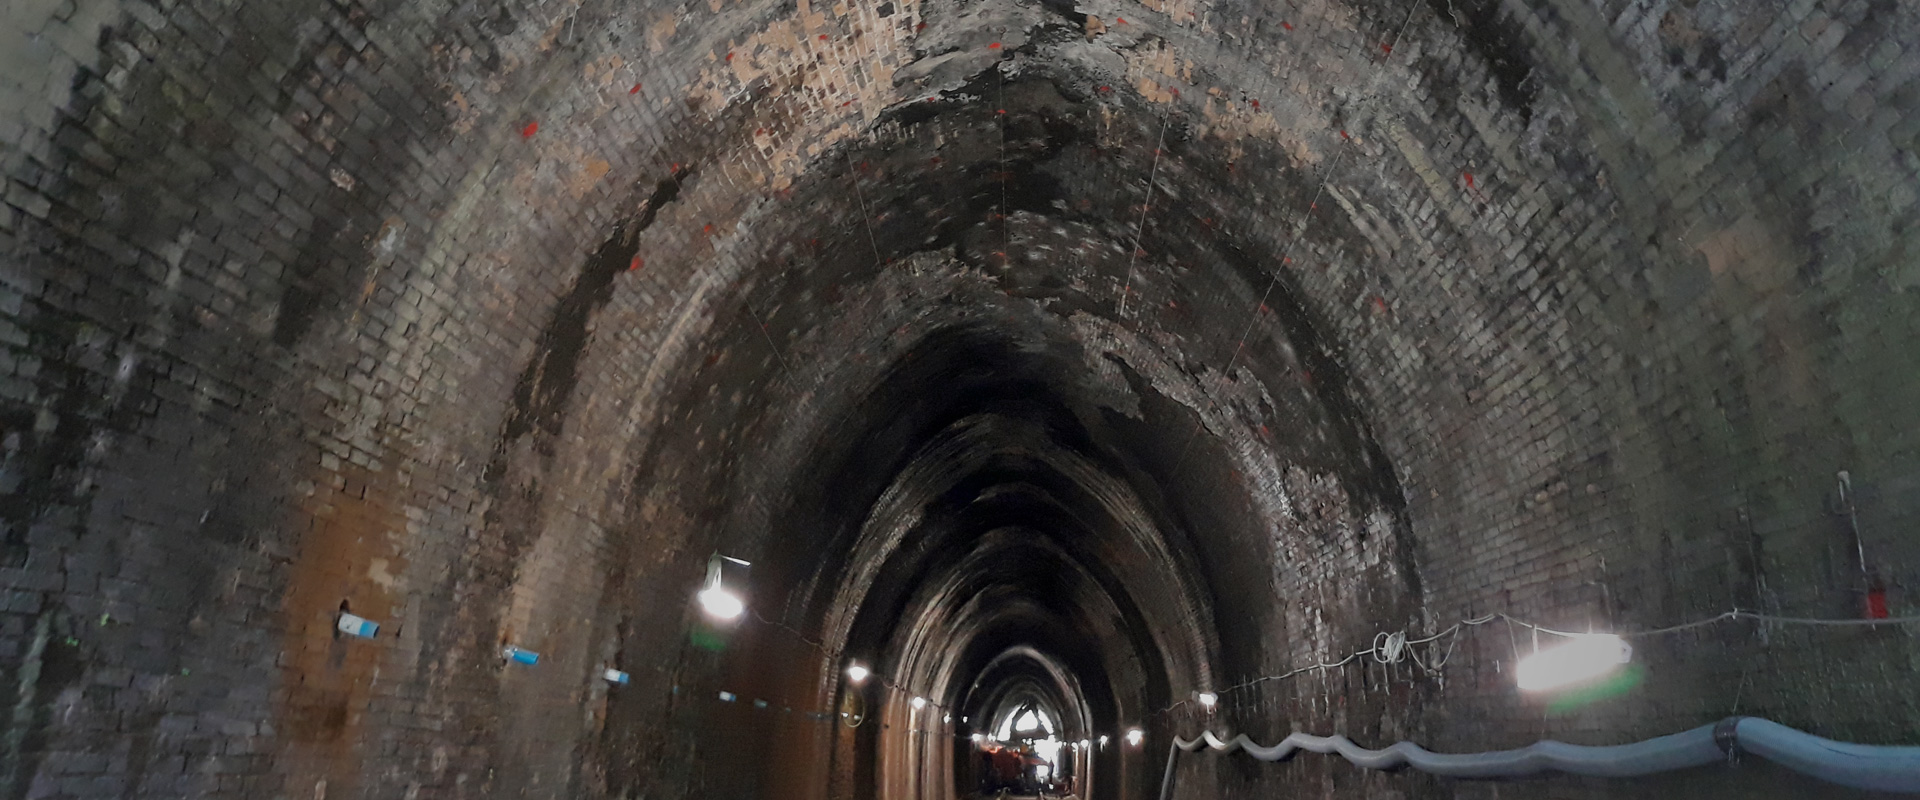 Tunnel waterproofing in Campania